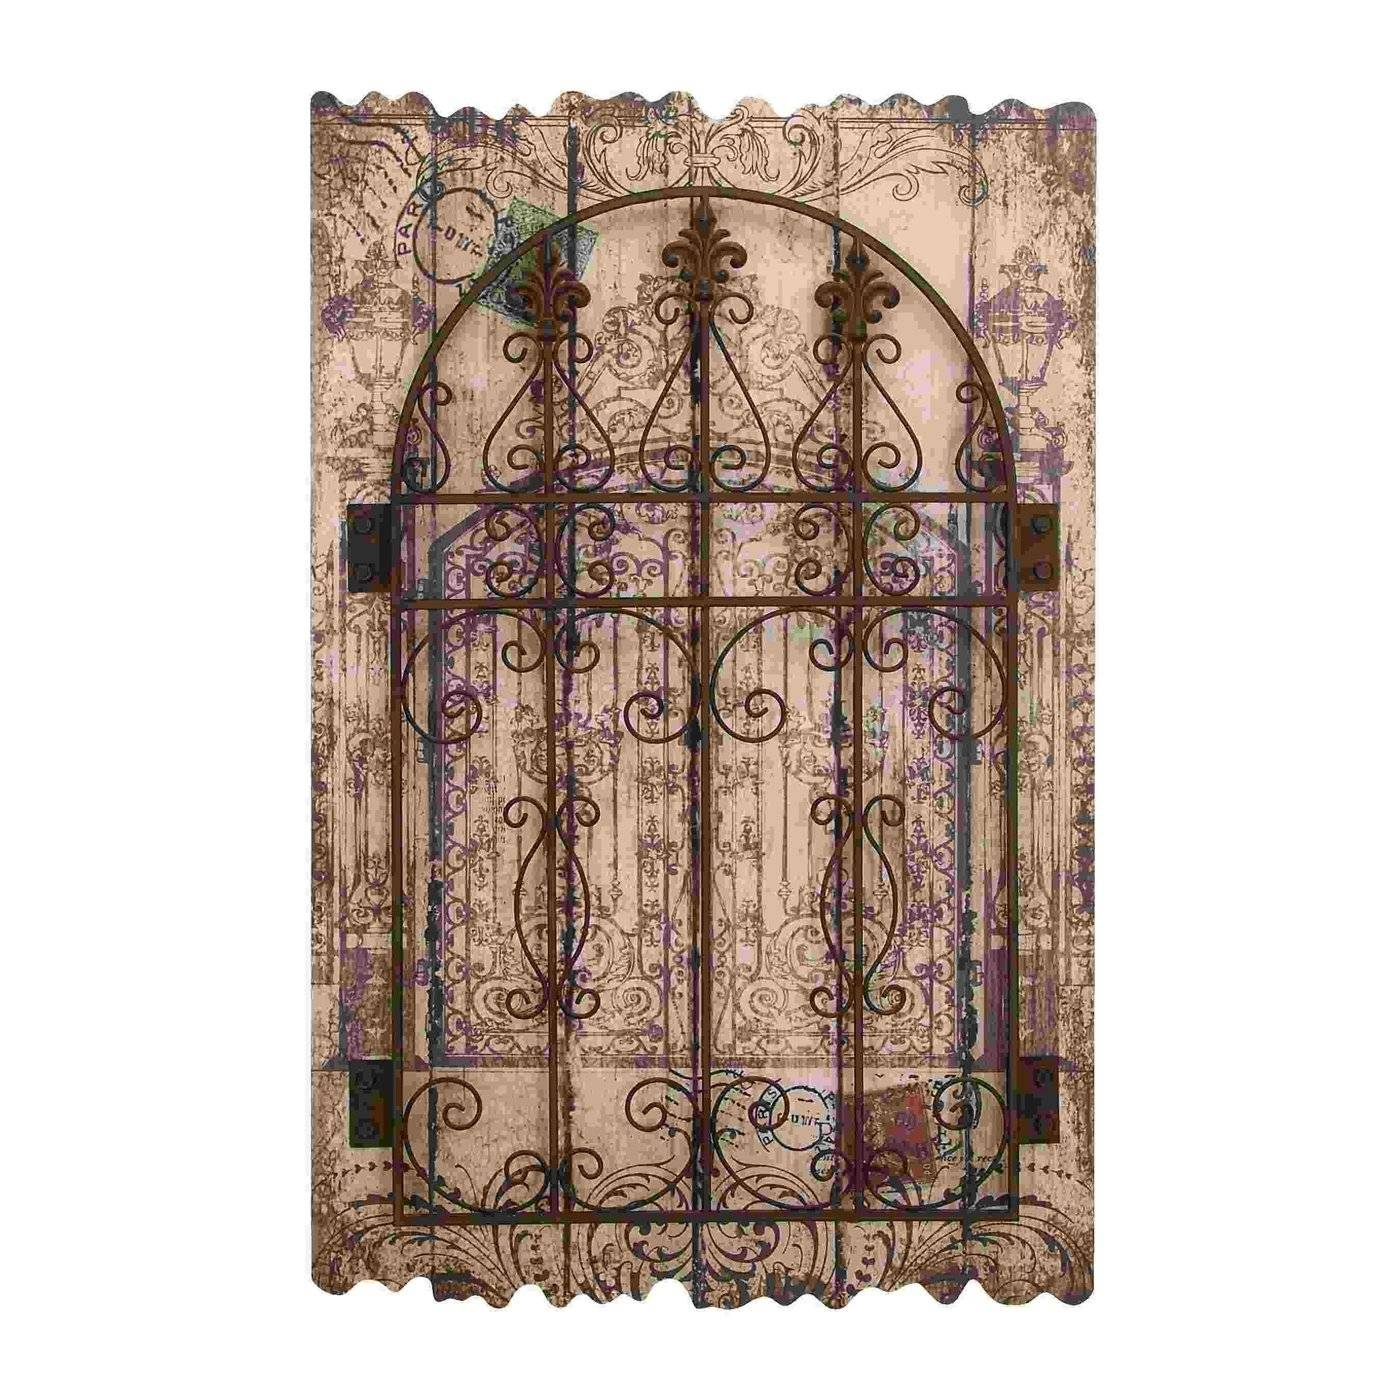 Wall Art Designs: Rustic Wood And Metal Wall Art Transitional In Latest Mediterranean Metal Wall Art (View 8 of 20)